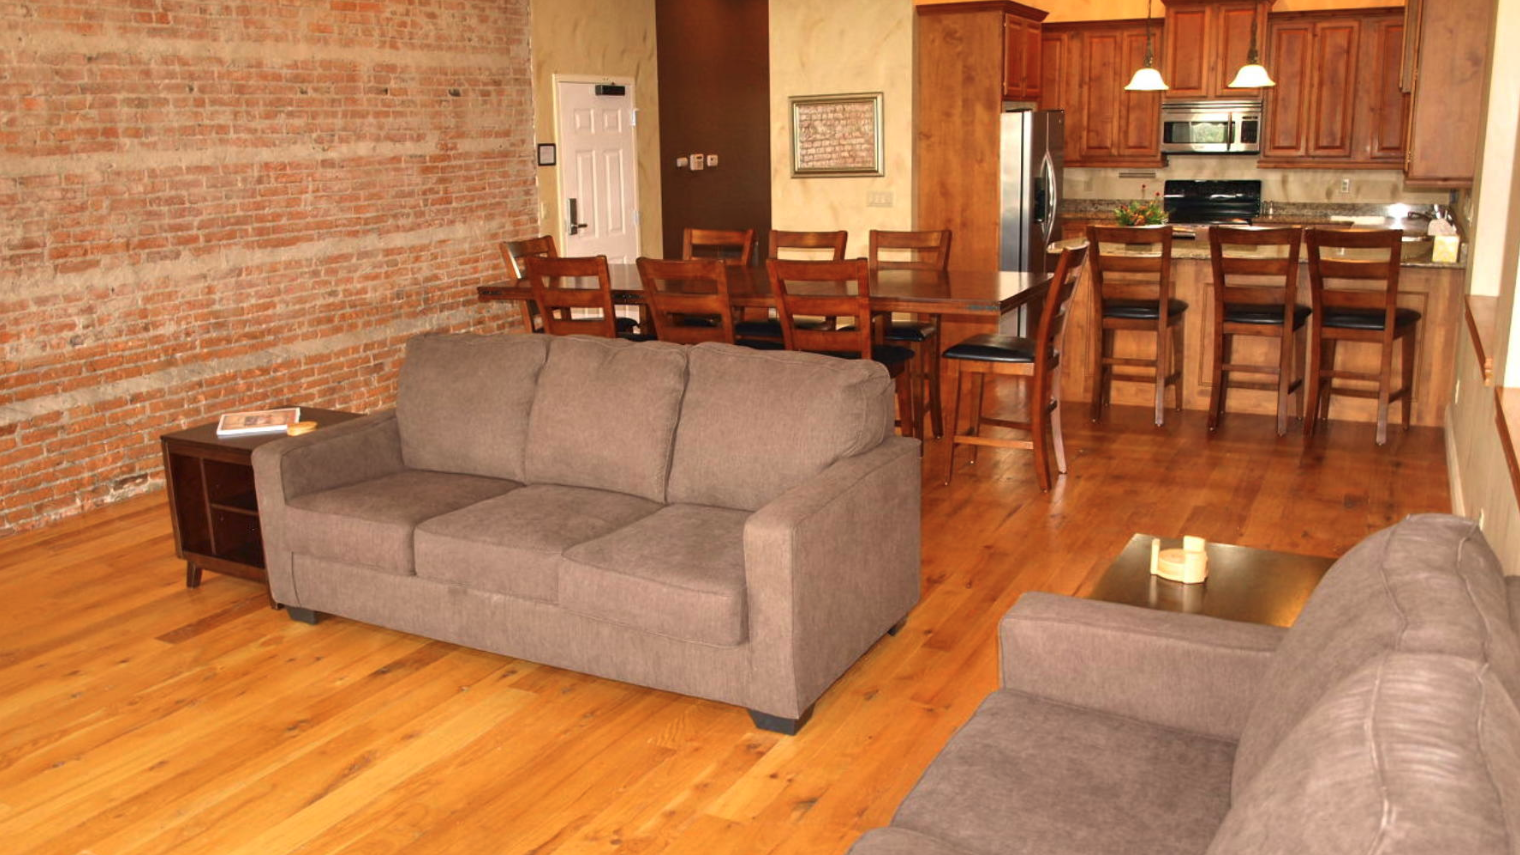 A large suite at cornerstone Inn featuring a kitchen, dining area, and living space.